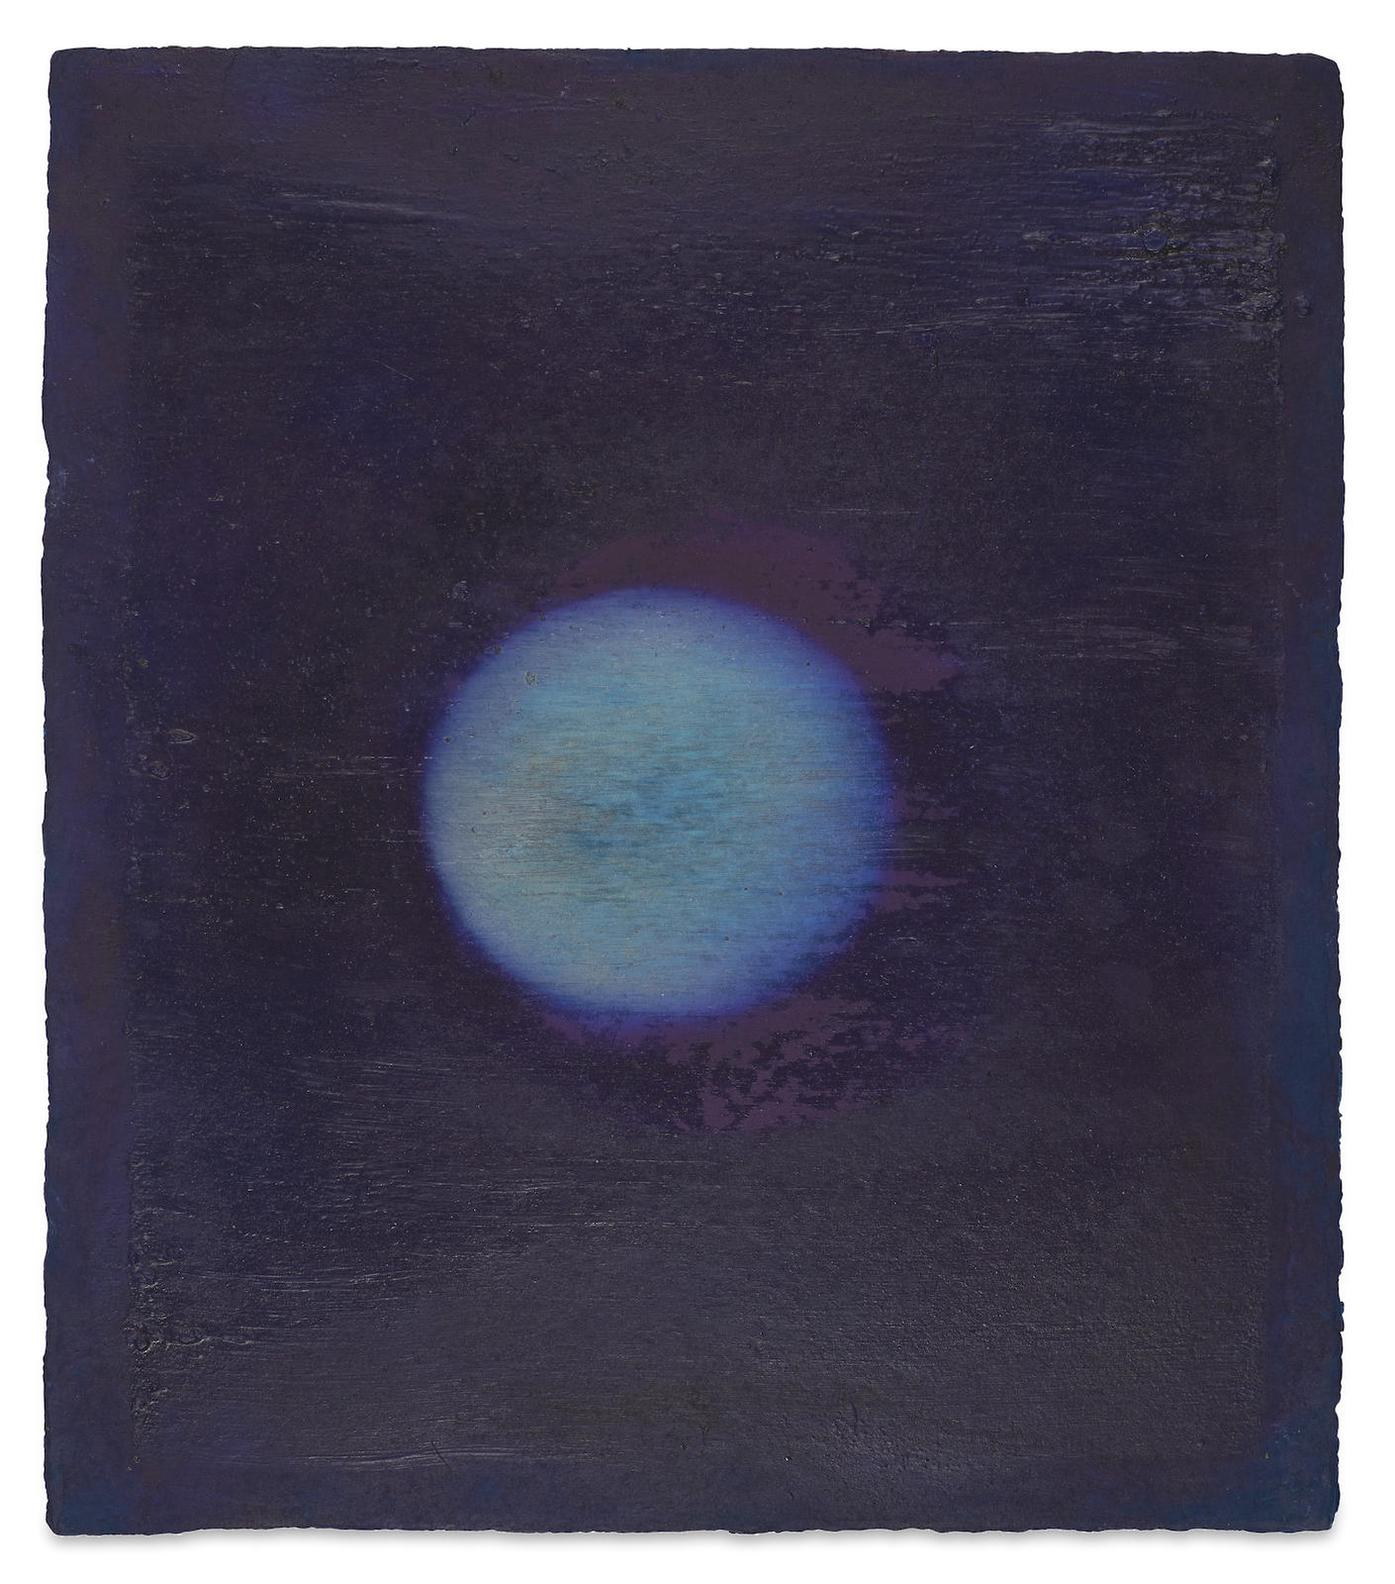 Joe Goode-Hyperion (From The Moon Series, Mnp 38)-1998